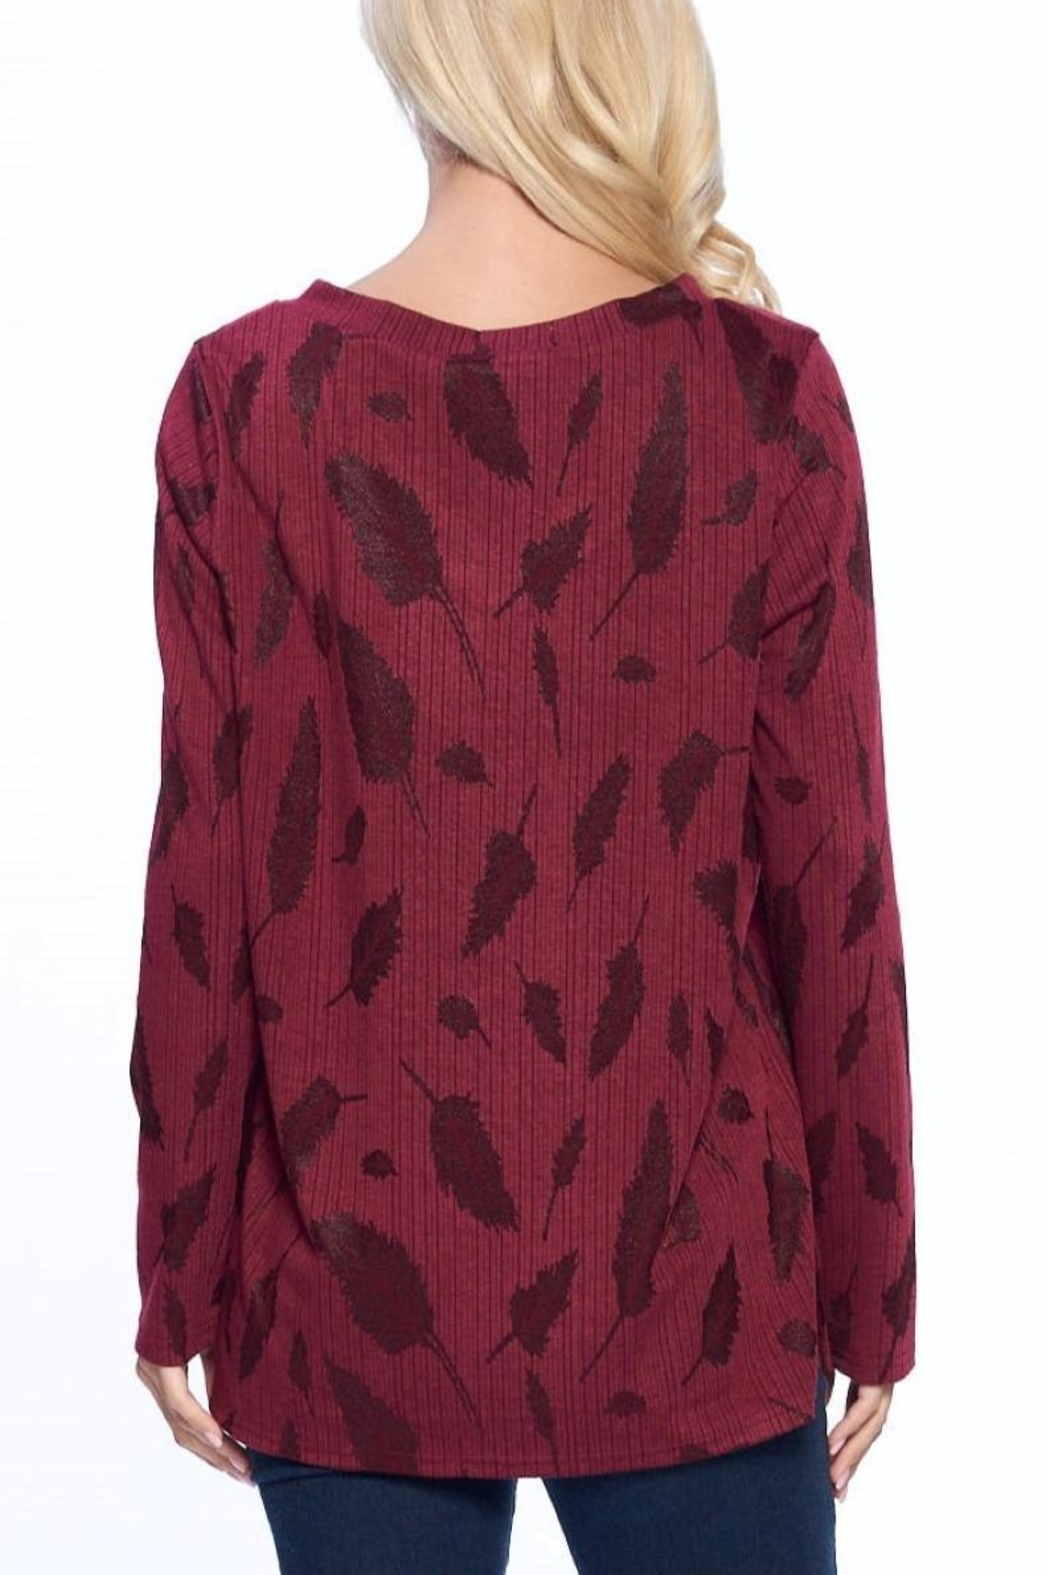 Aryeh Wine V-Neck Knit Top - Back Cropped Image